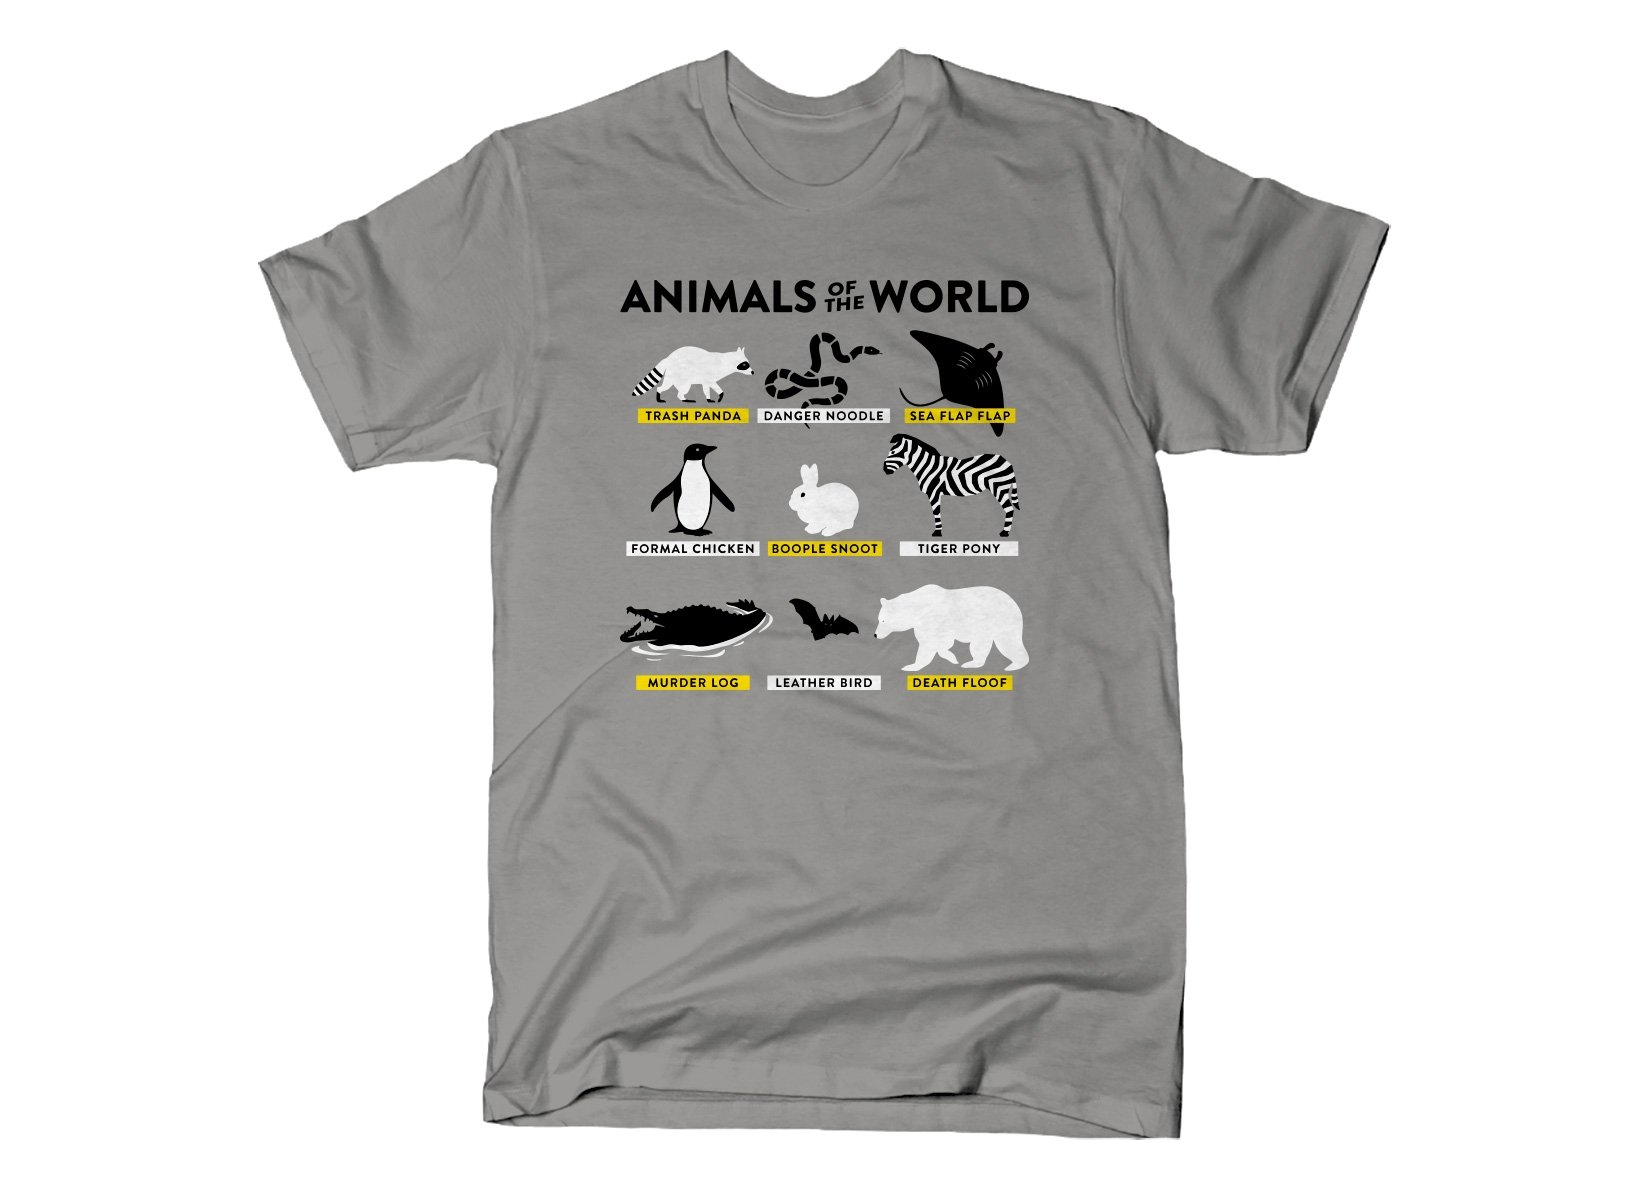 Animals Of The World on Mens T-Shirt